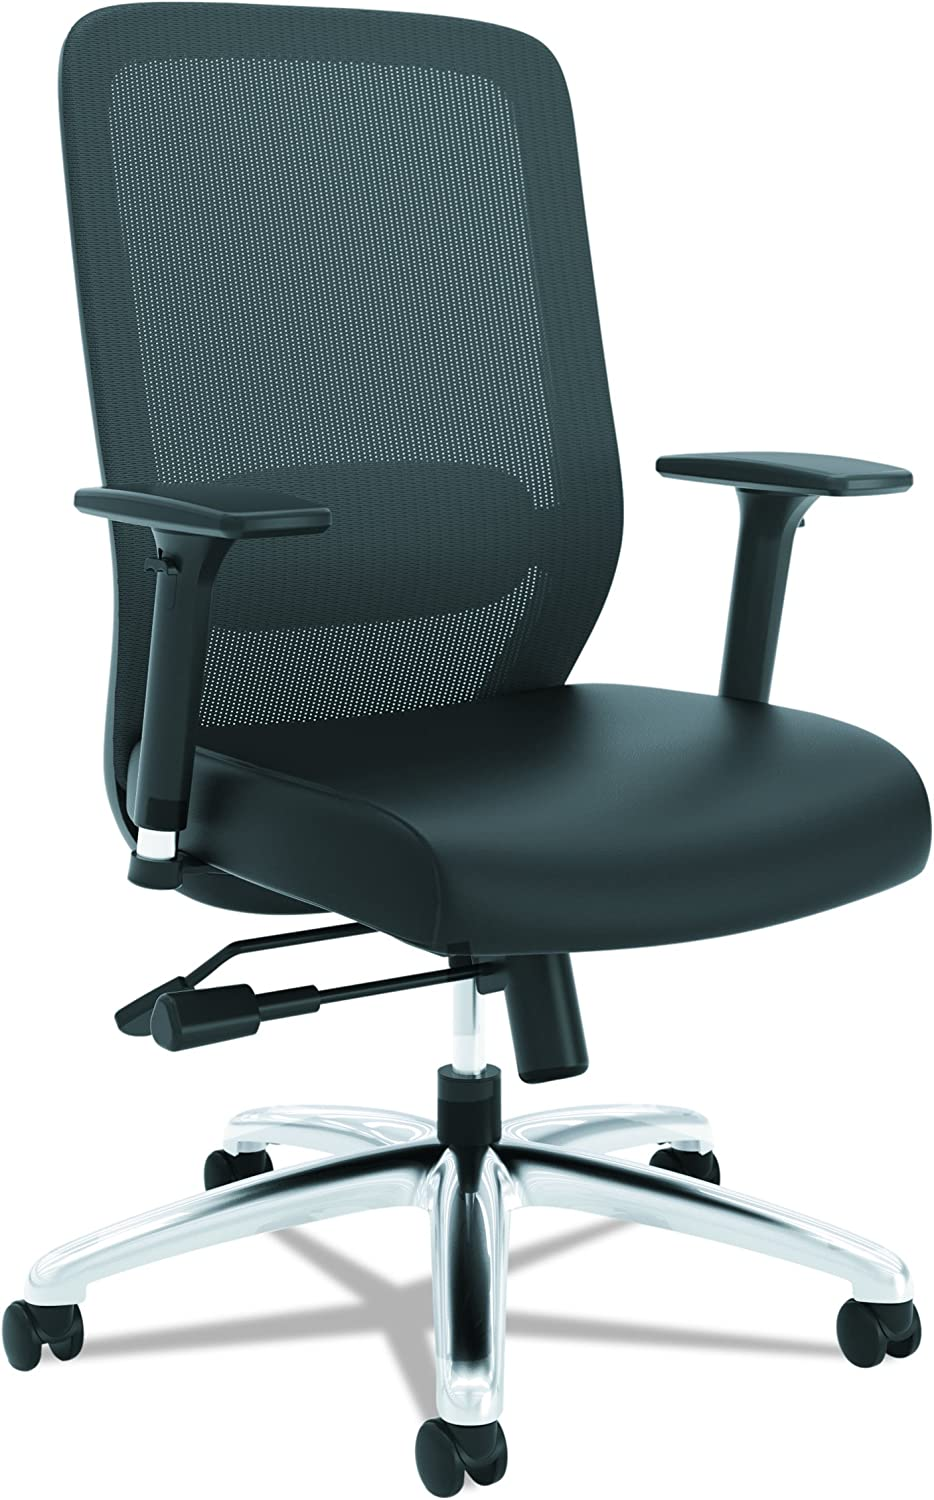 HON Exposure Mesh Task Chair - Mesh High-Back Computer Chair with Leather Seat for Office Desk, Black